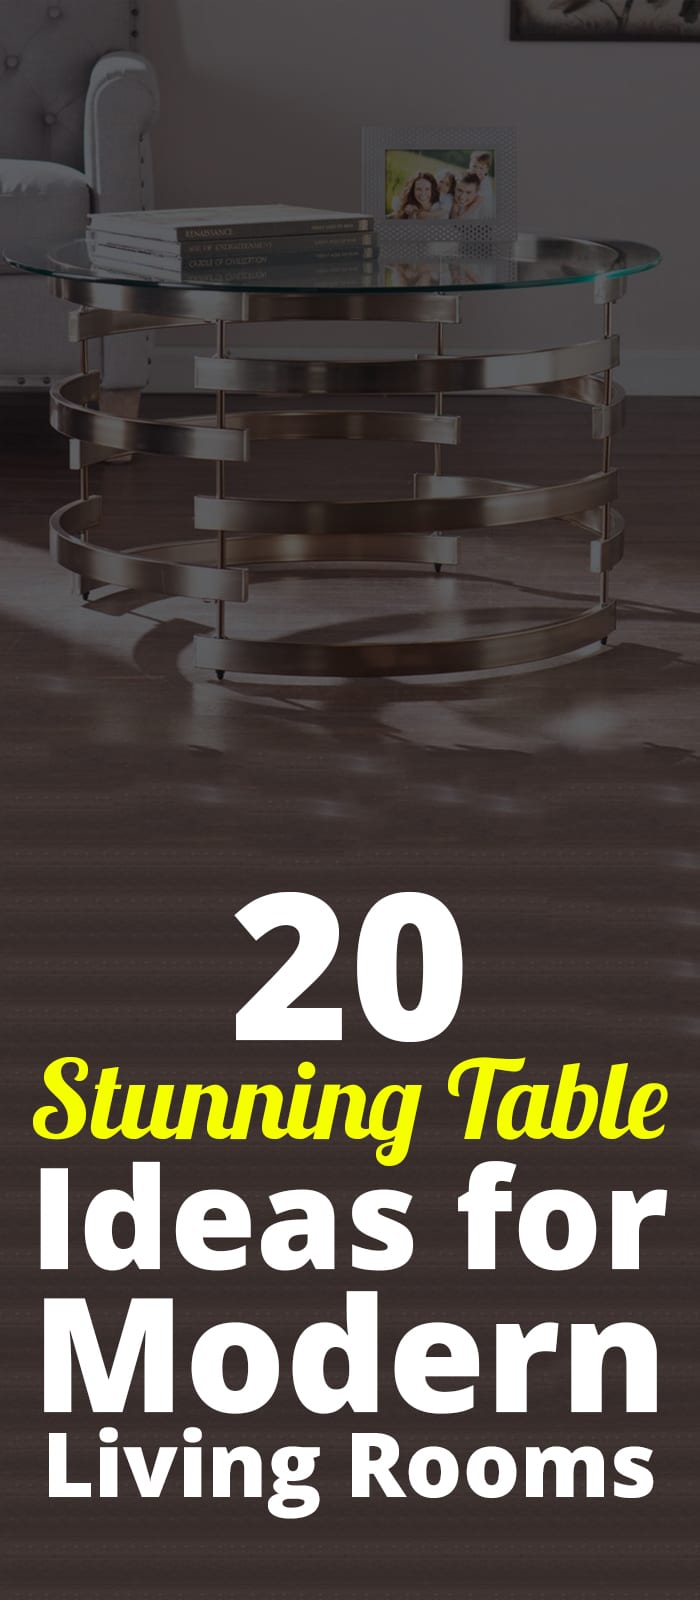 20 Stunning Centre Table Ideas for Modern Living Rooms